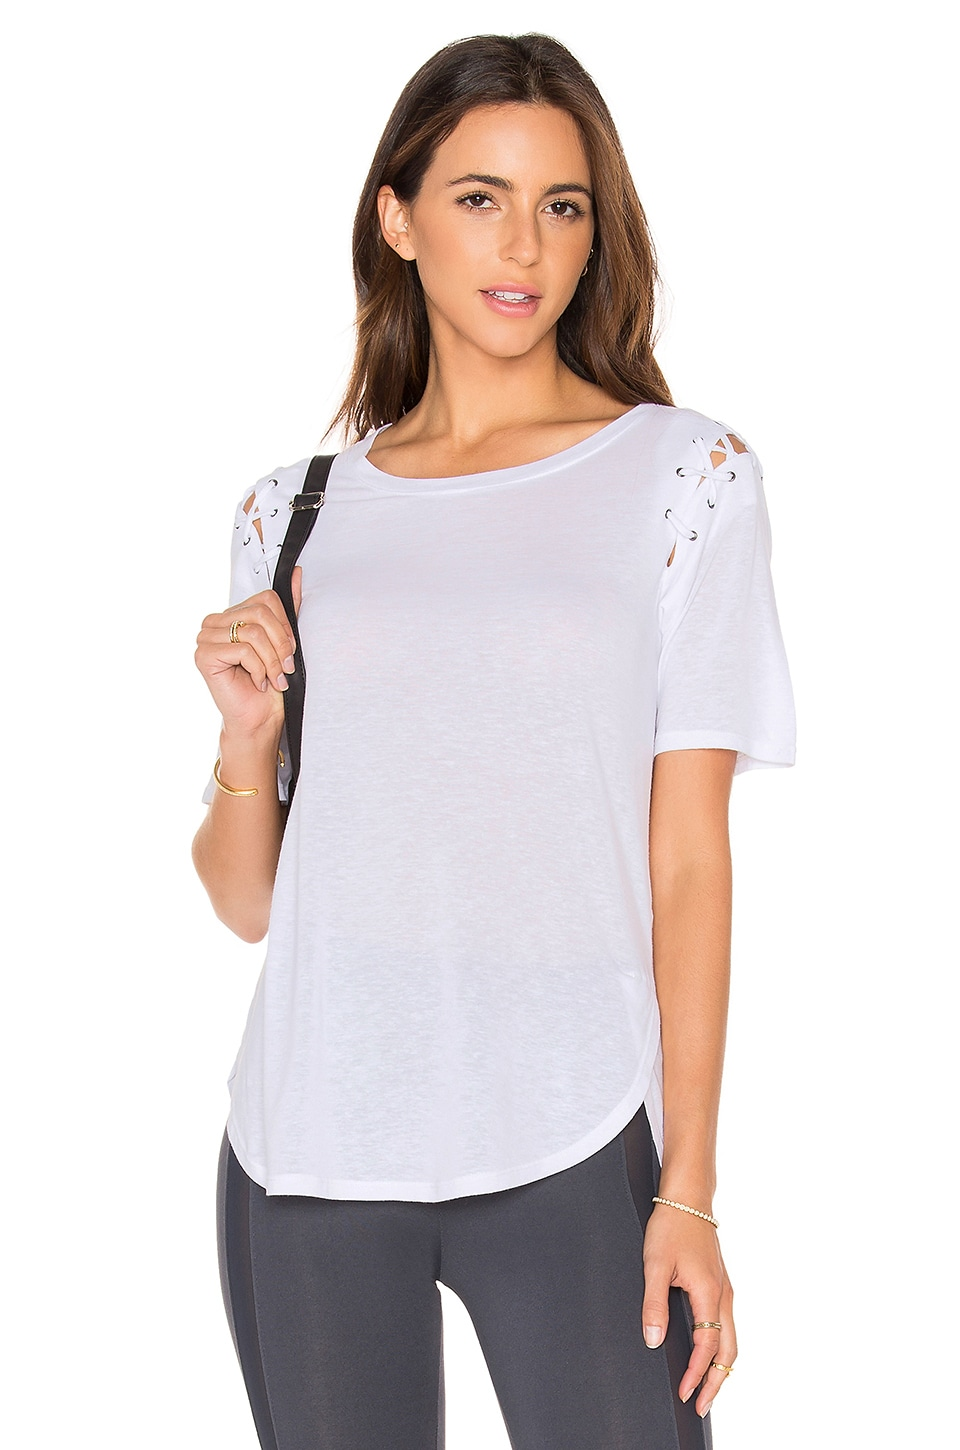 Lace Up Sleeve Top by David Lerner